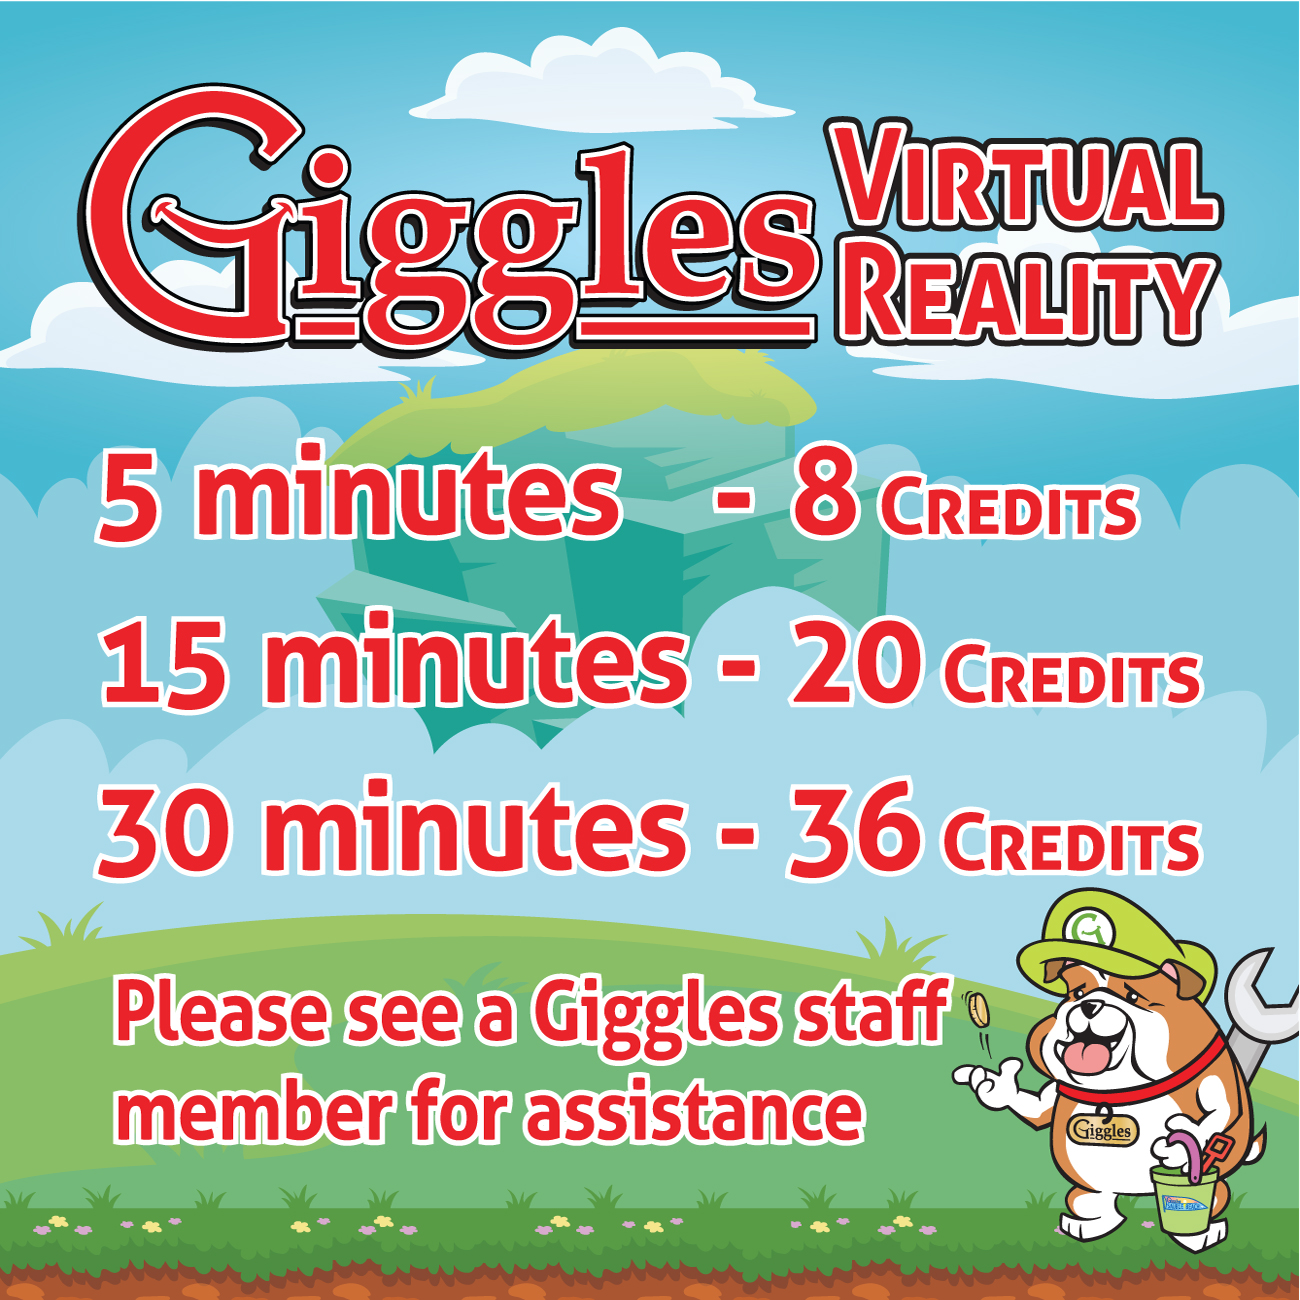 Giggles arcade virtual reality banners